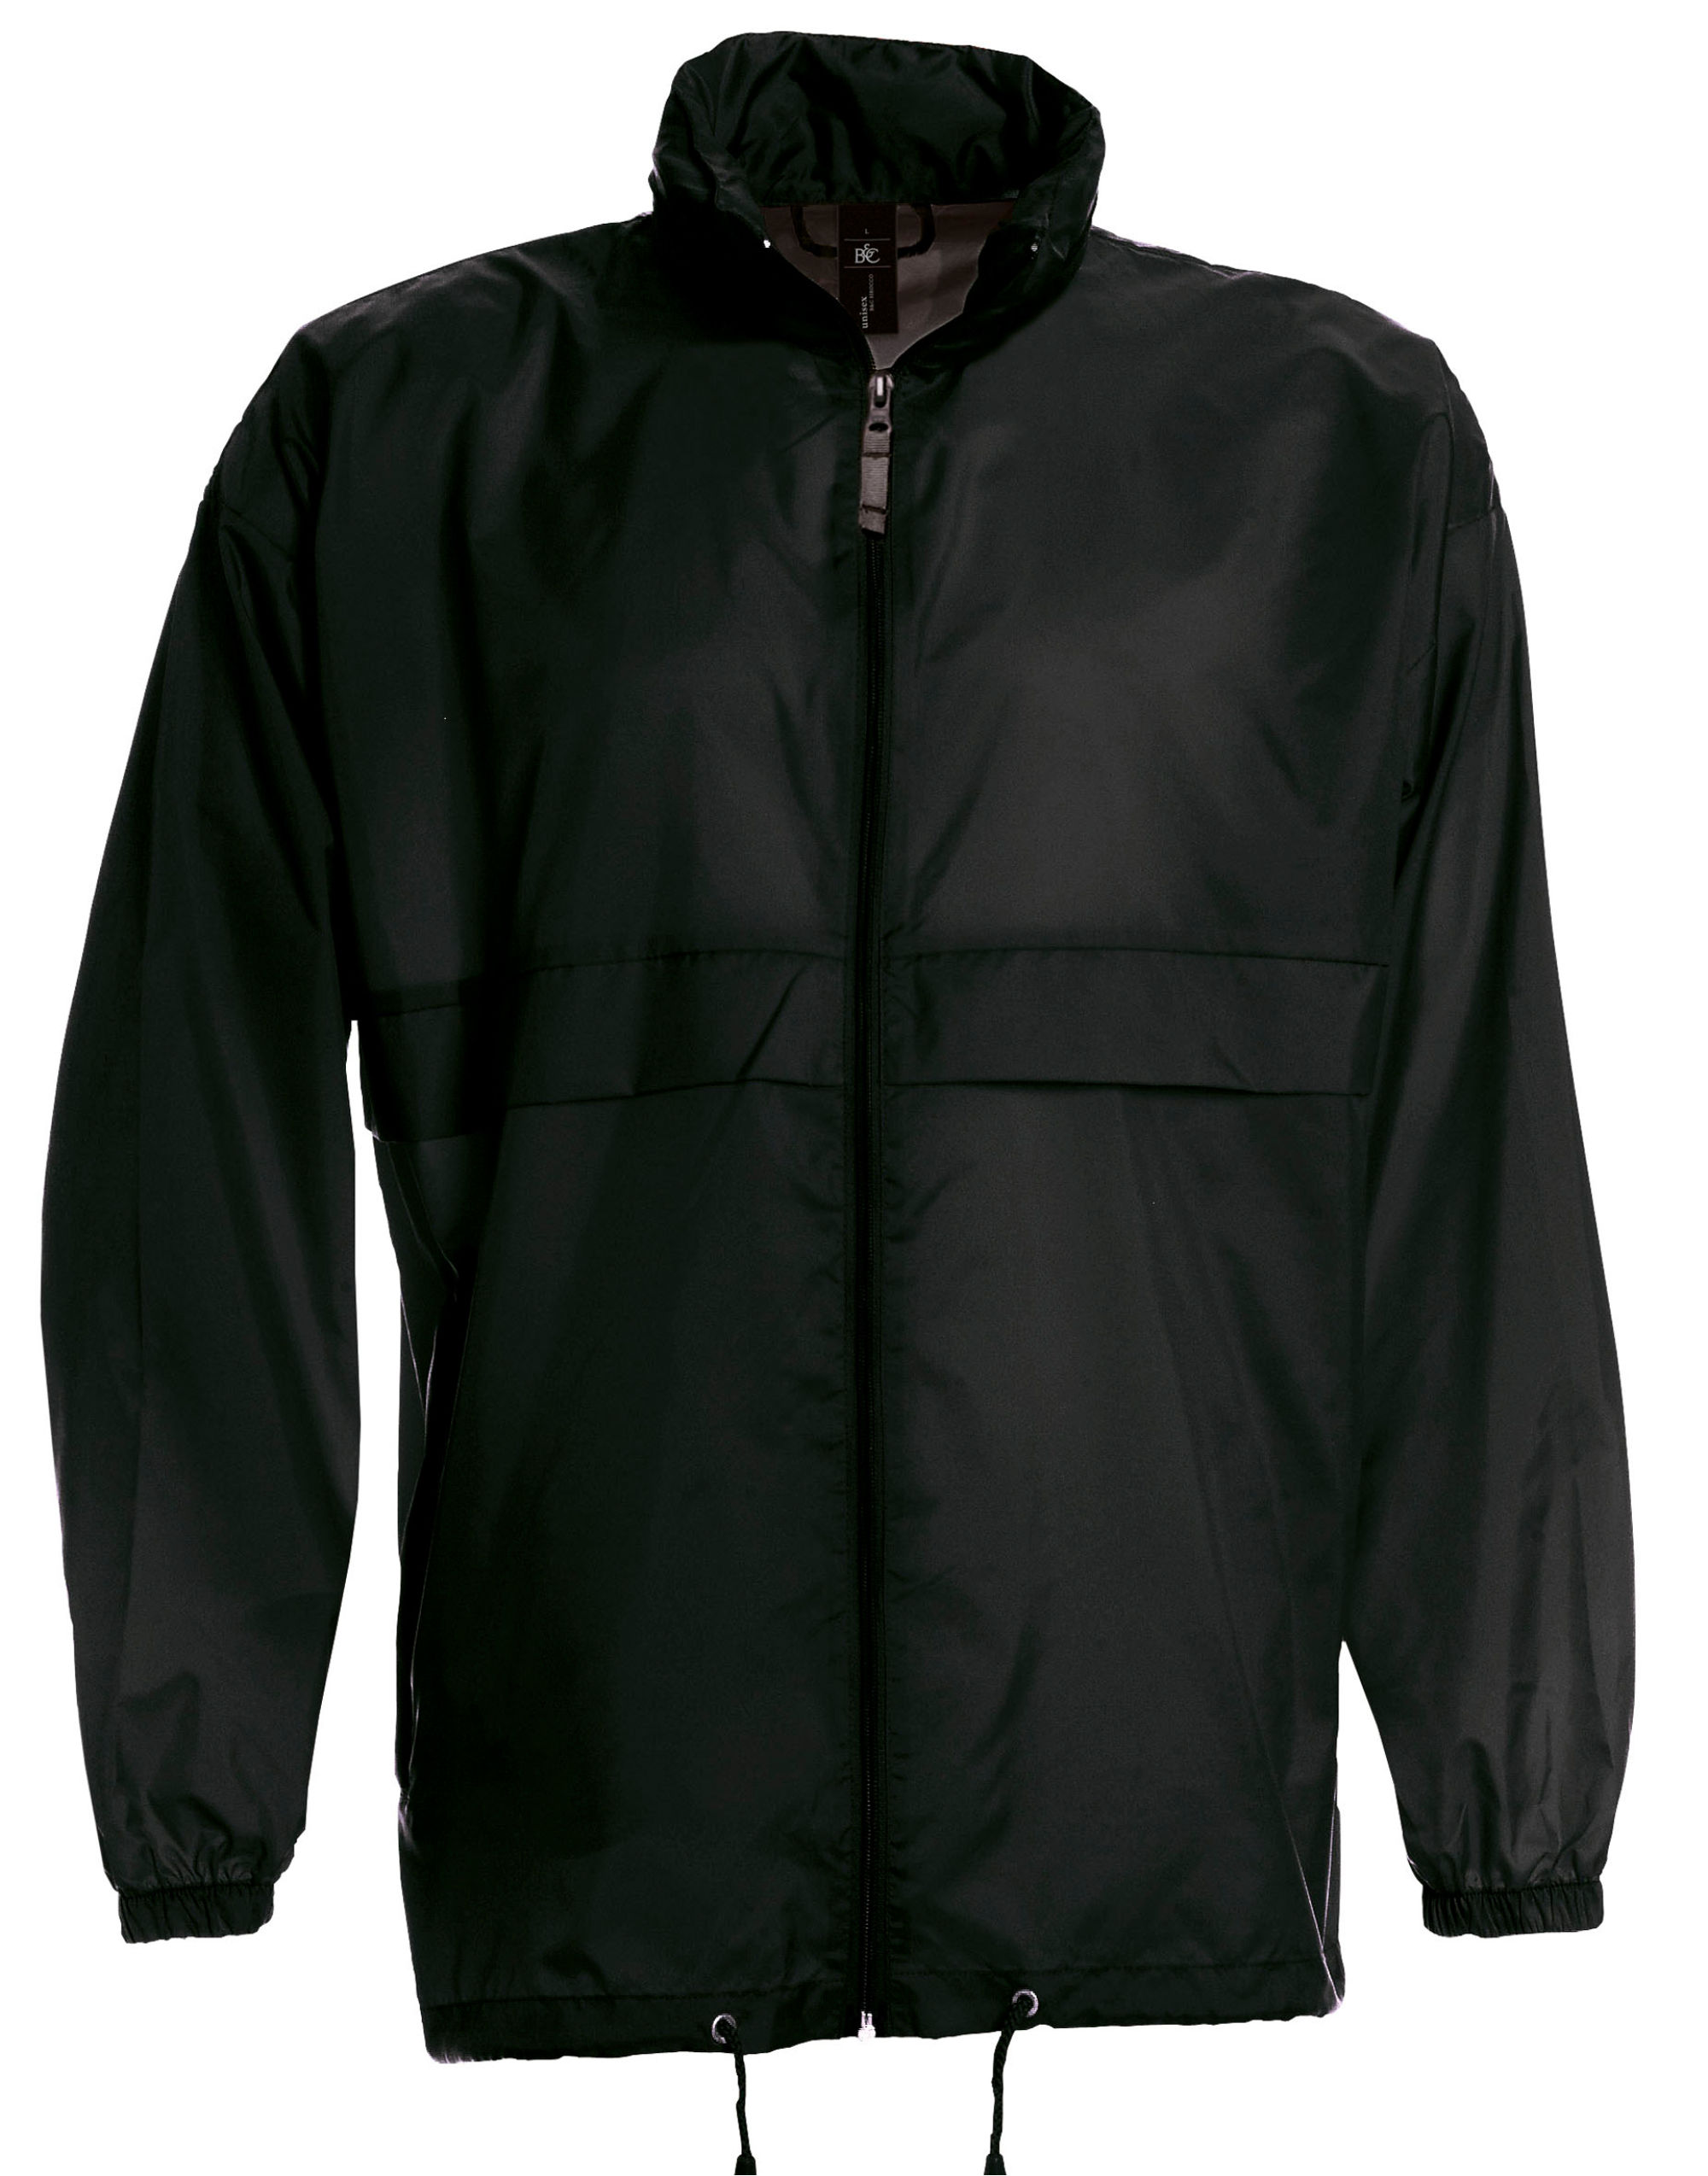 Sirocco Men's Lightweight Jacket